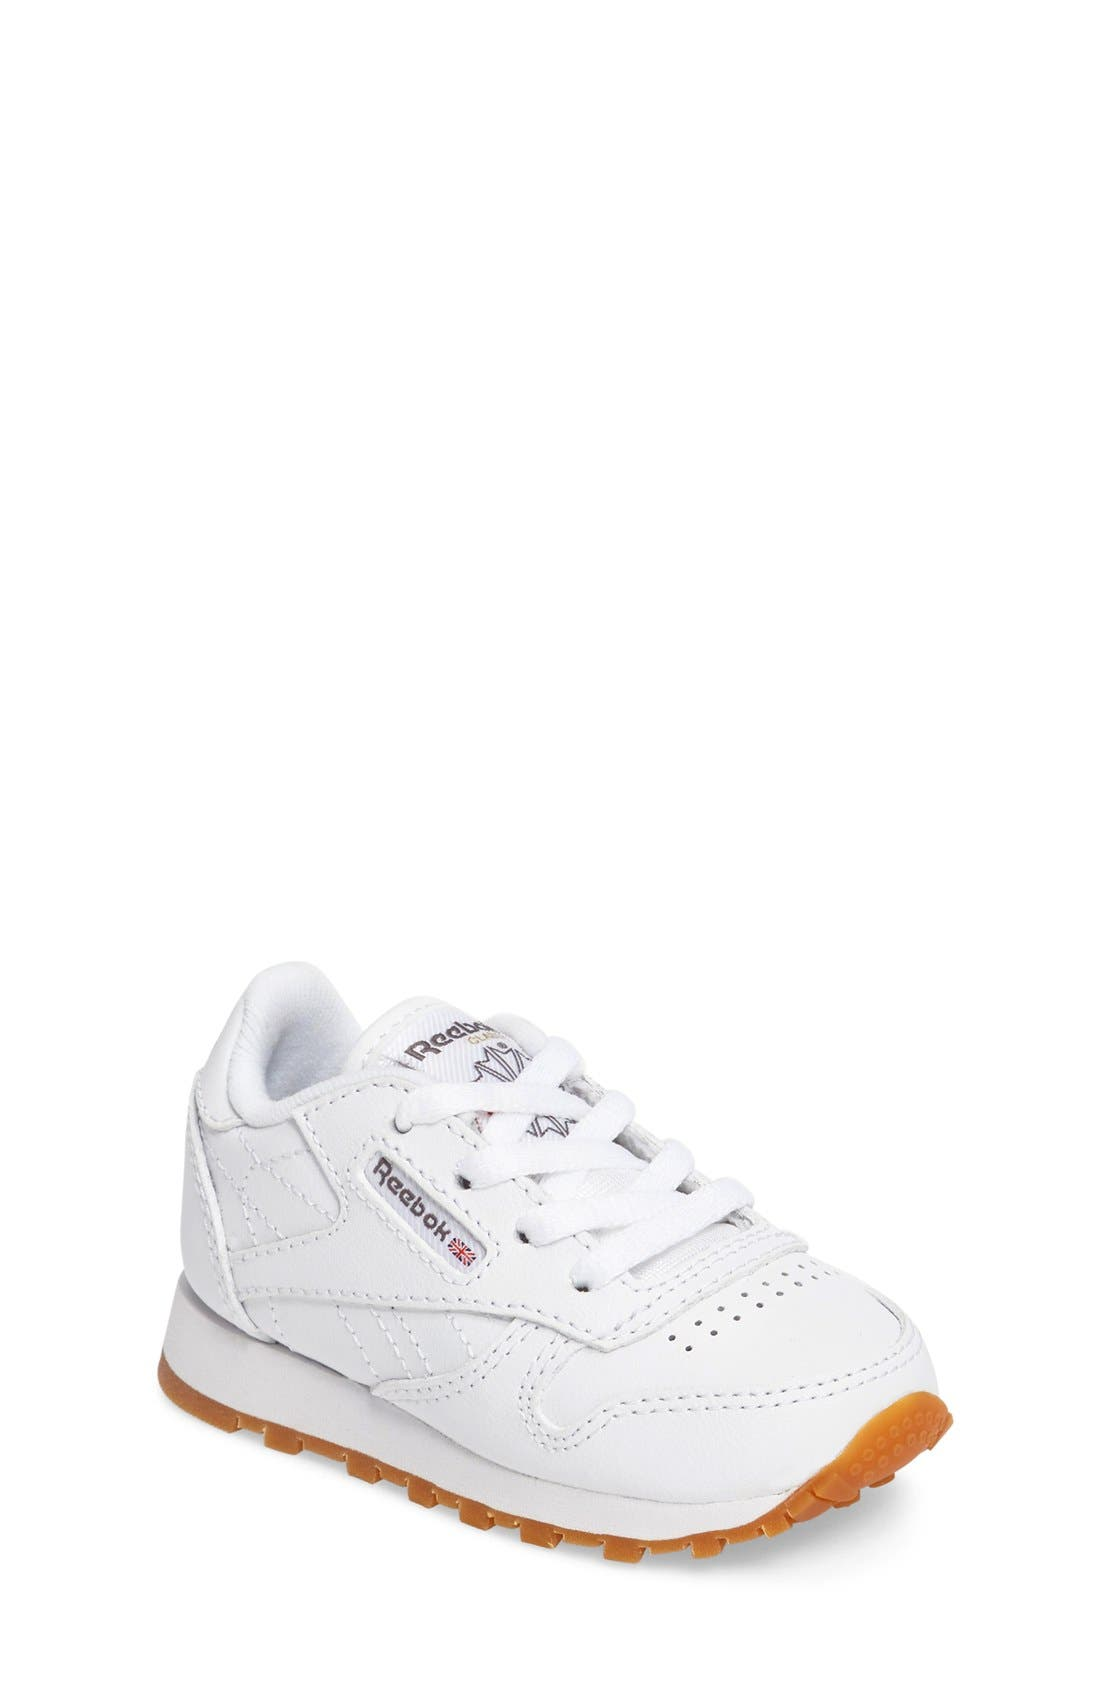 Reebok Classic Leather Sneaker (Baby, Walker & Toddler)